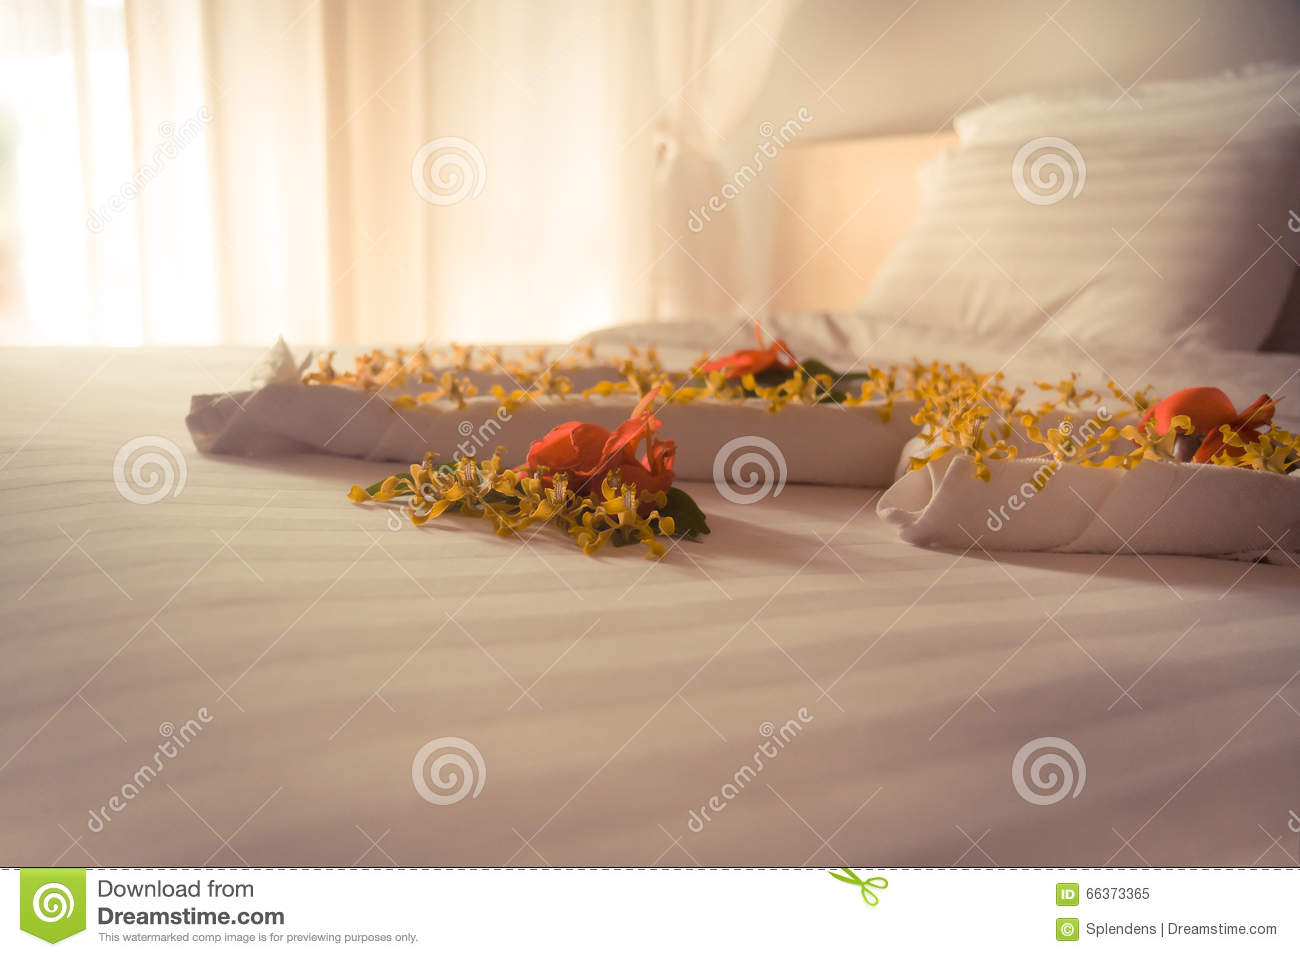 Luxury Romantic Hotel Suite Room For Just Married Couple Stock Image